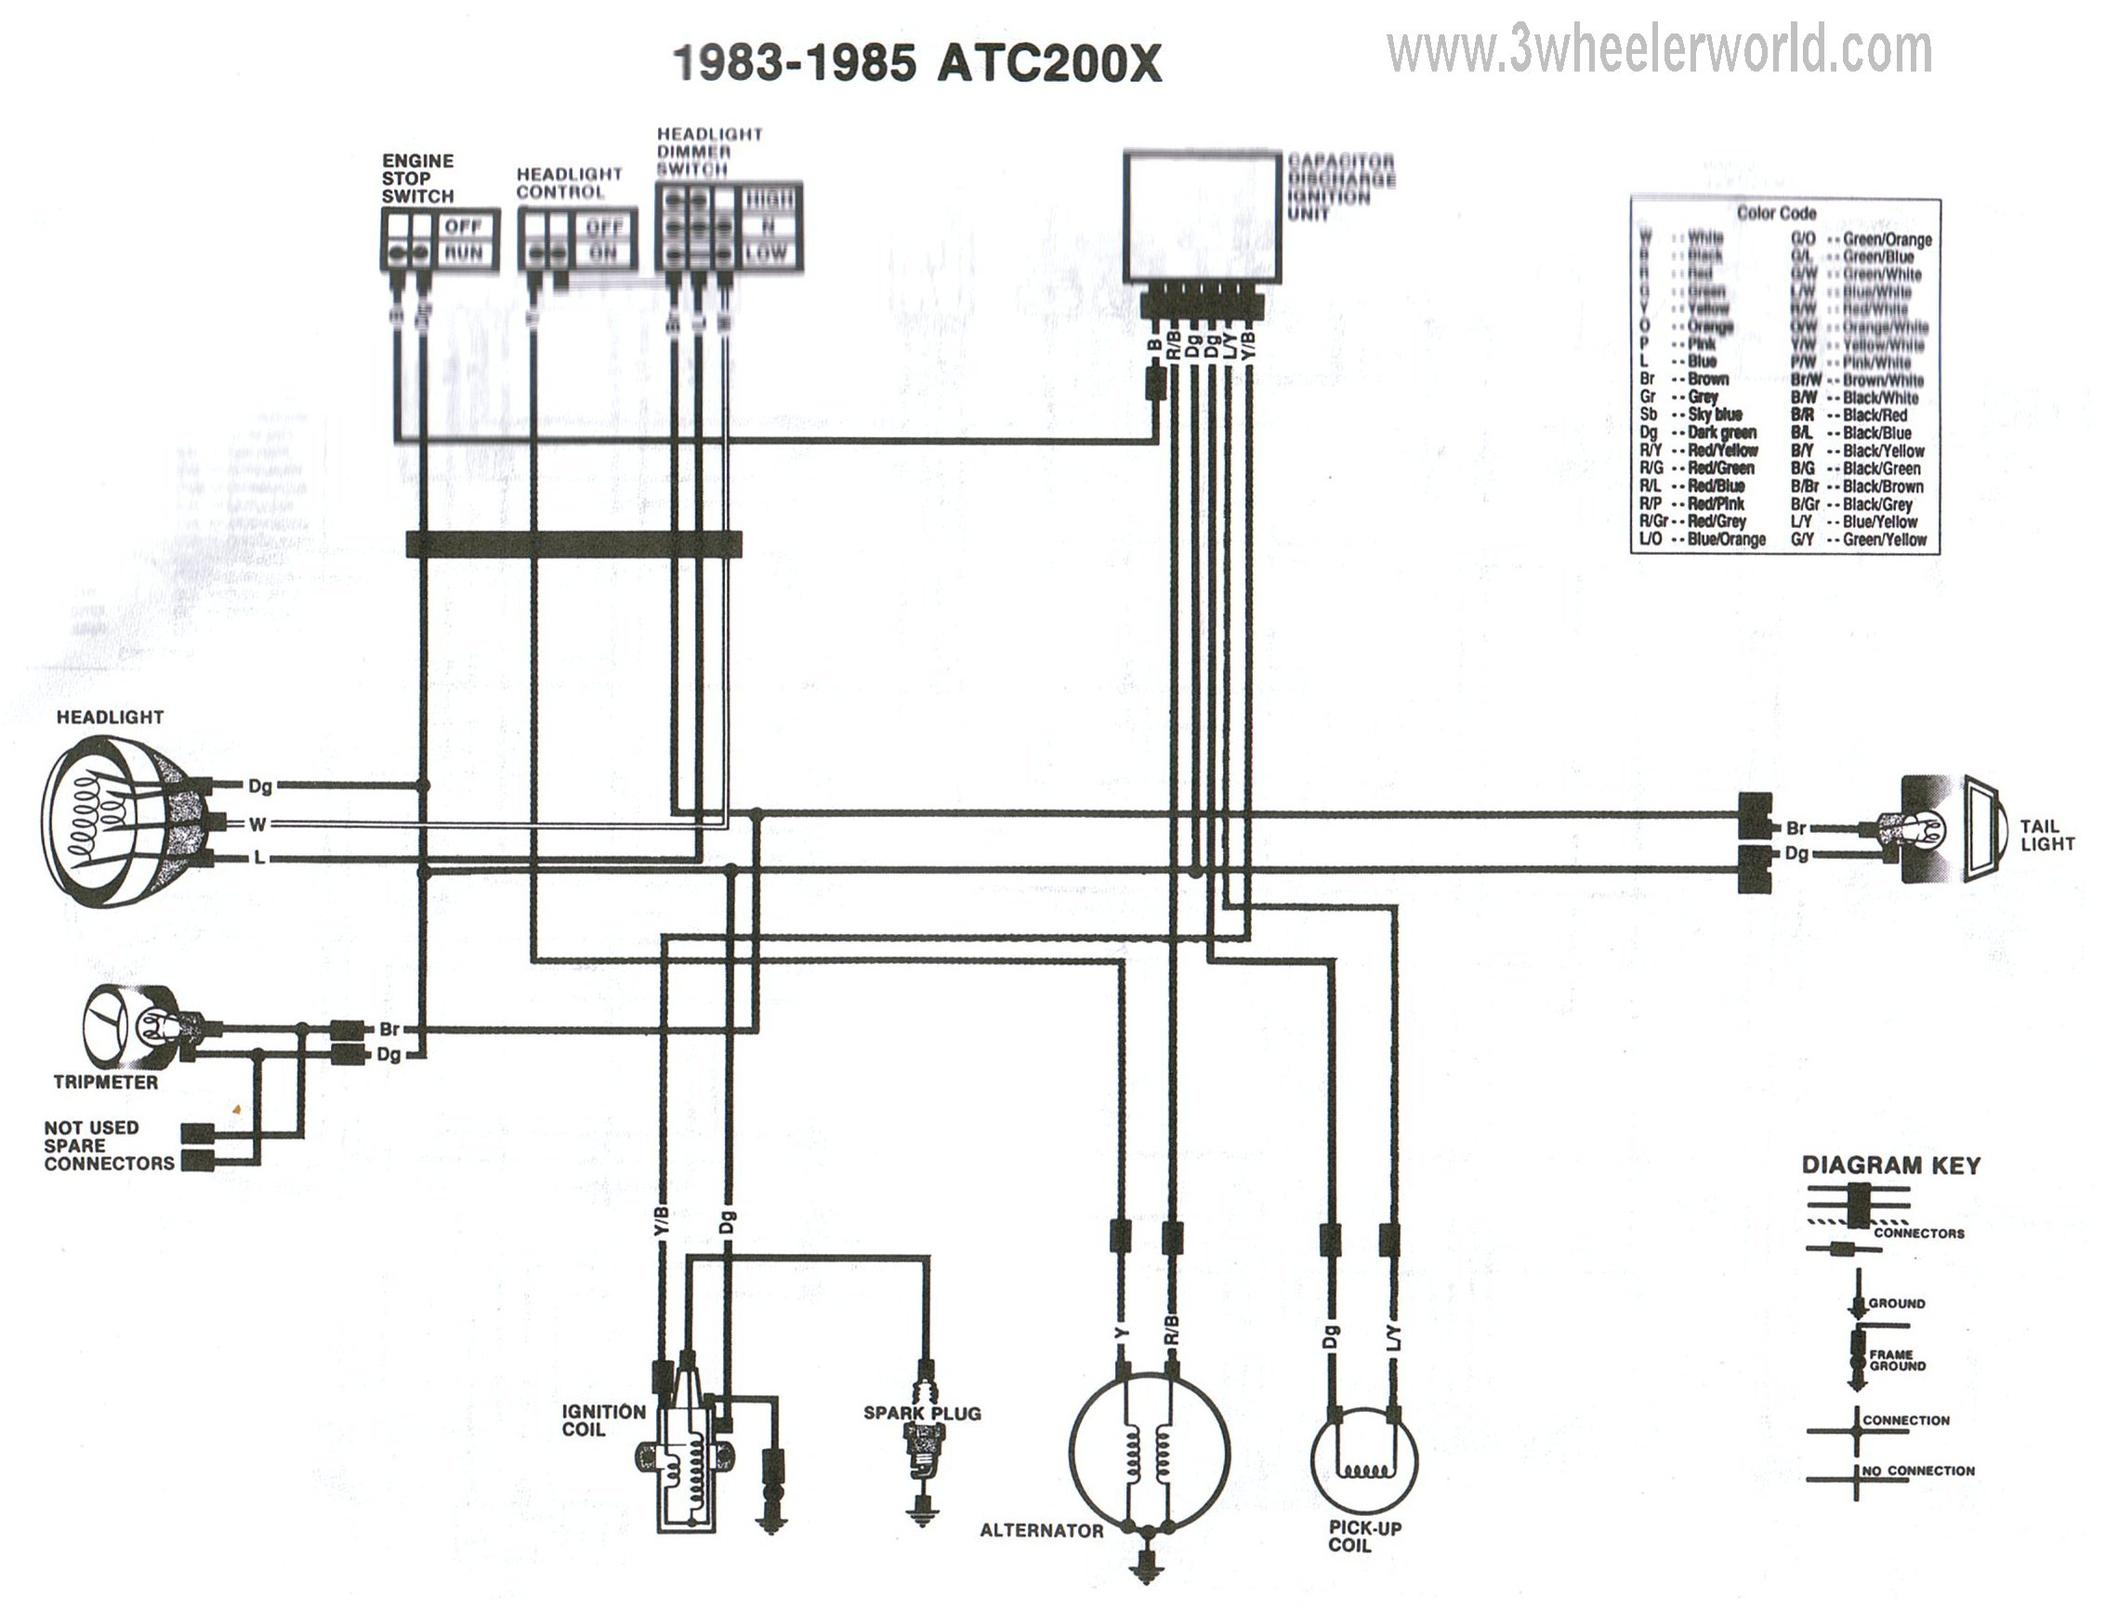 1985 Atc 250es Wiring Diagram Library Honda Xr600 Xr600r 1990 Motorcycle New Article Preview